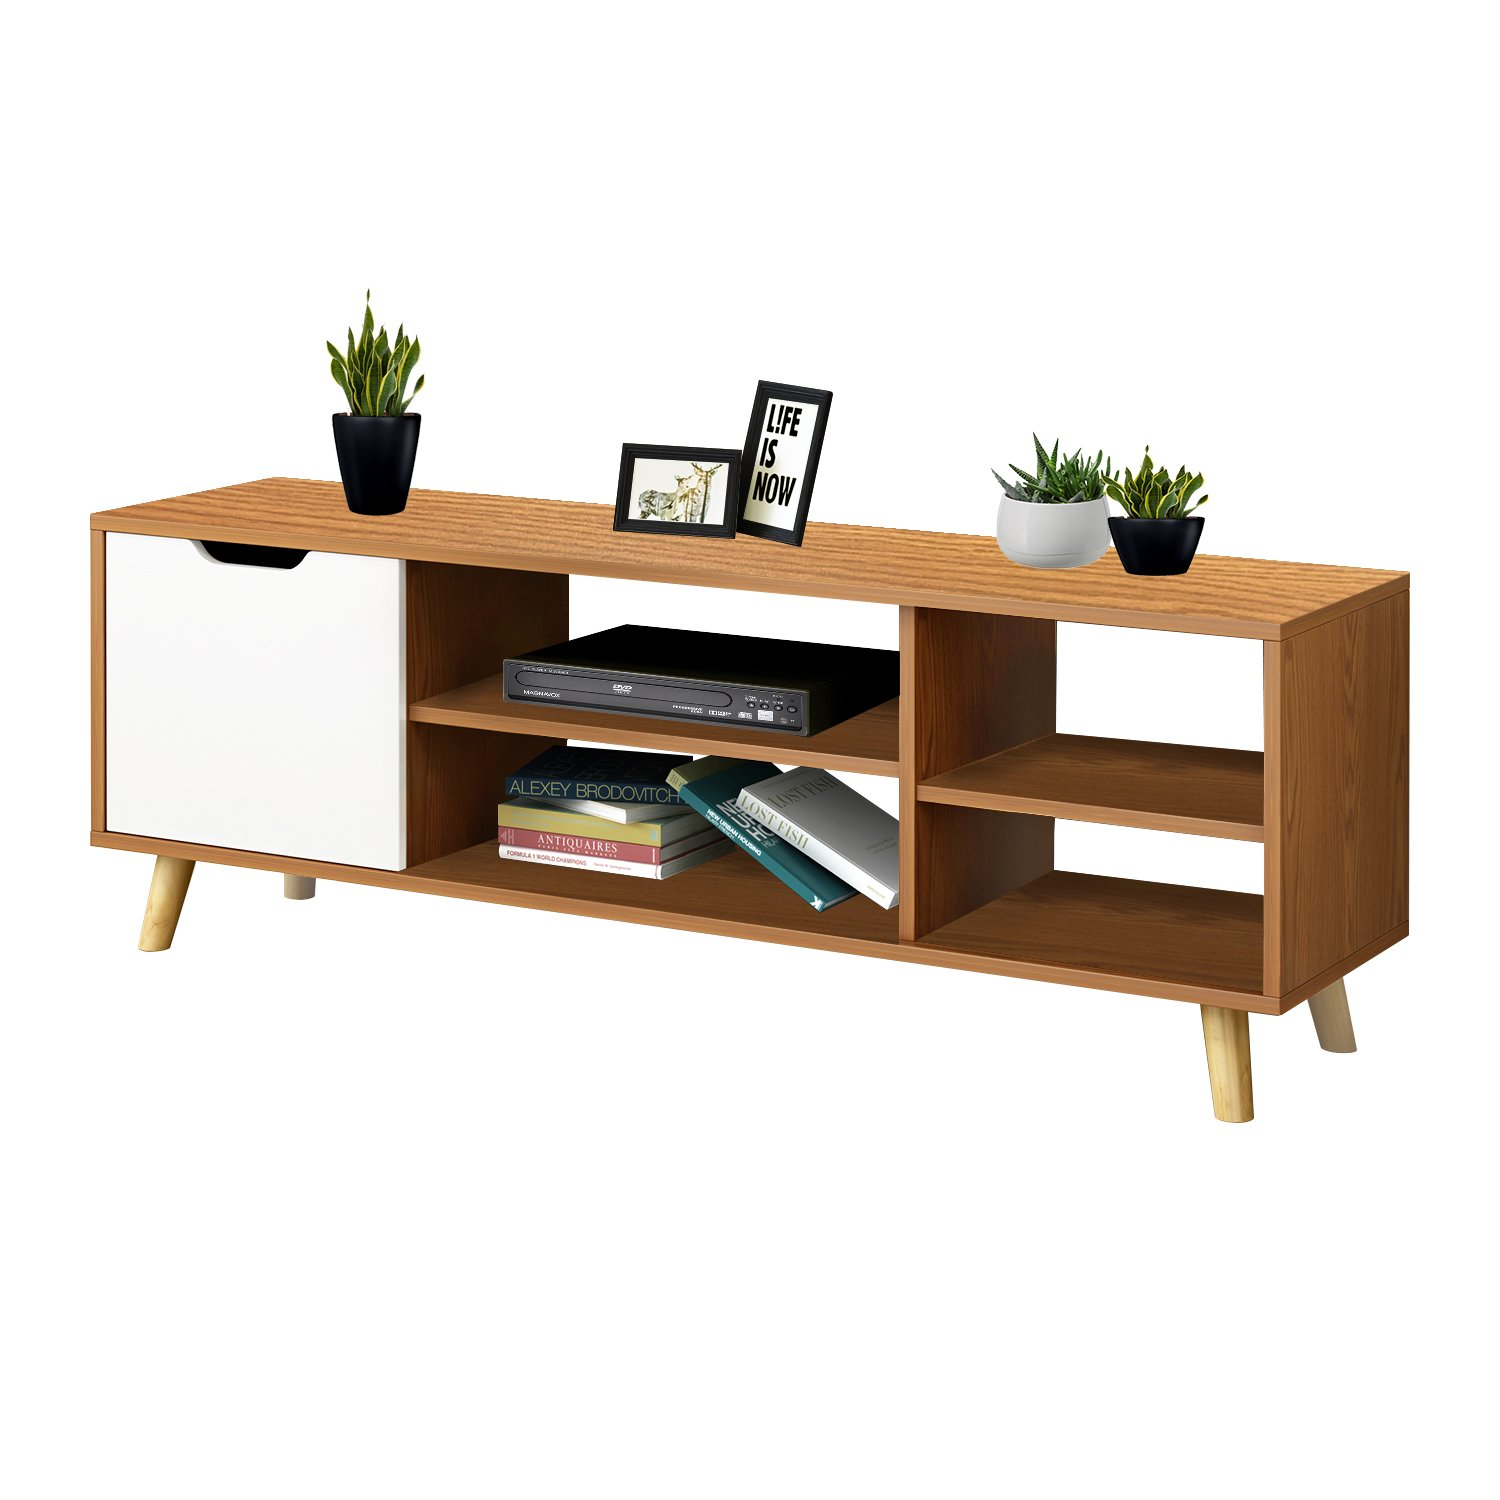 DL Furniture - Luxury 3D 3-Tier Entertainment TV Stand with Multiple Shelf and Storage Rack, 4 Stable Legs Support/Nature Wood